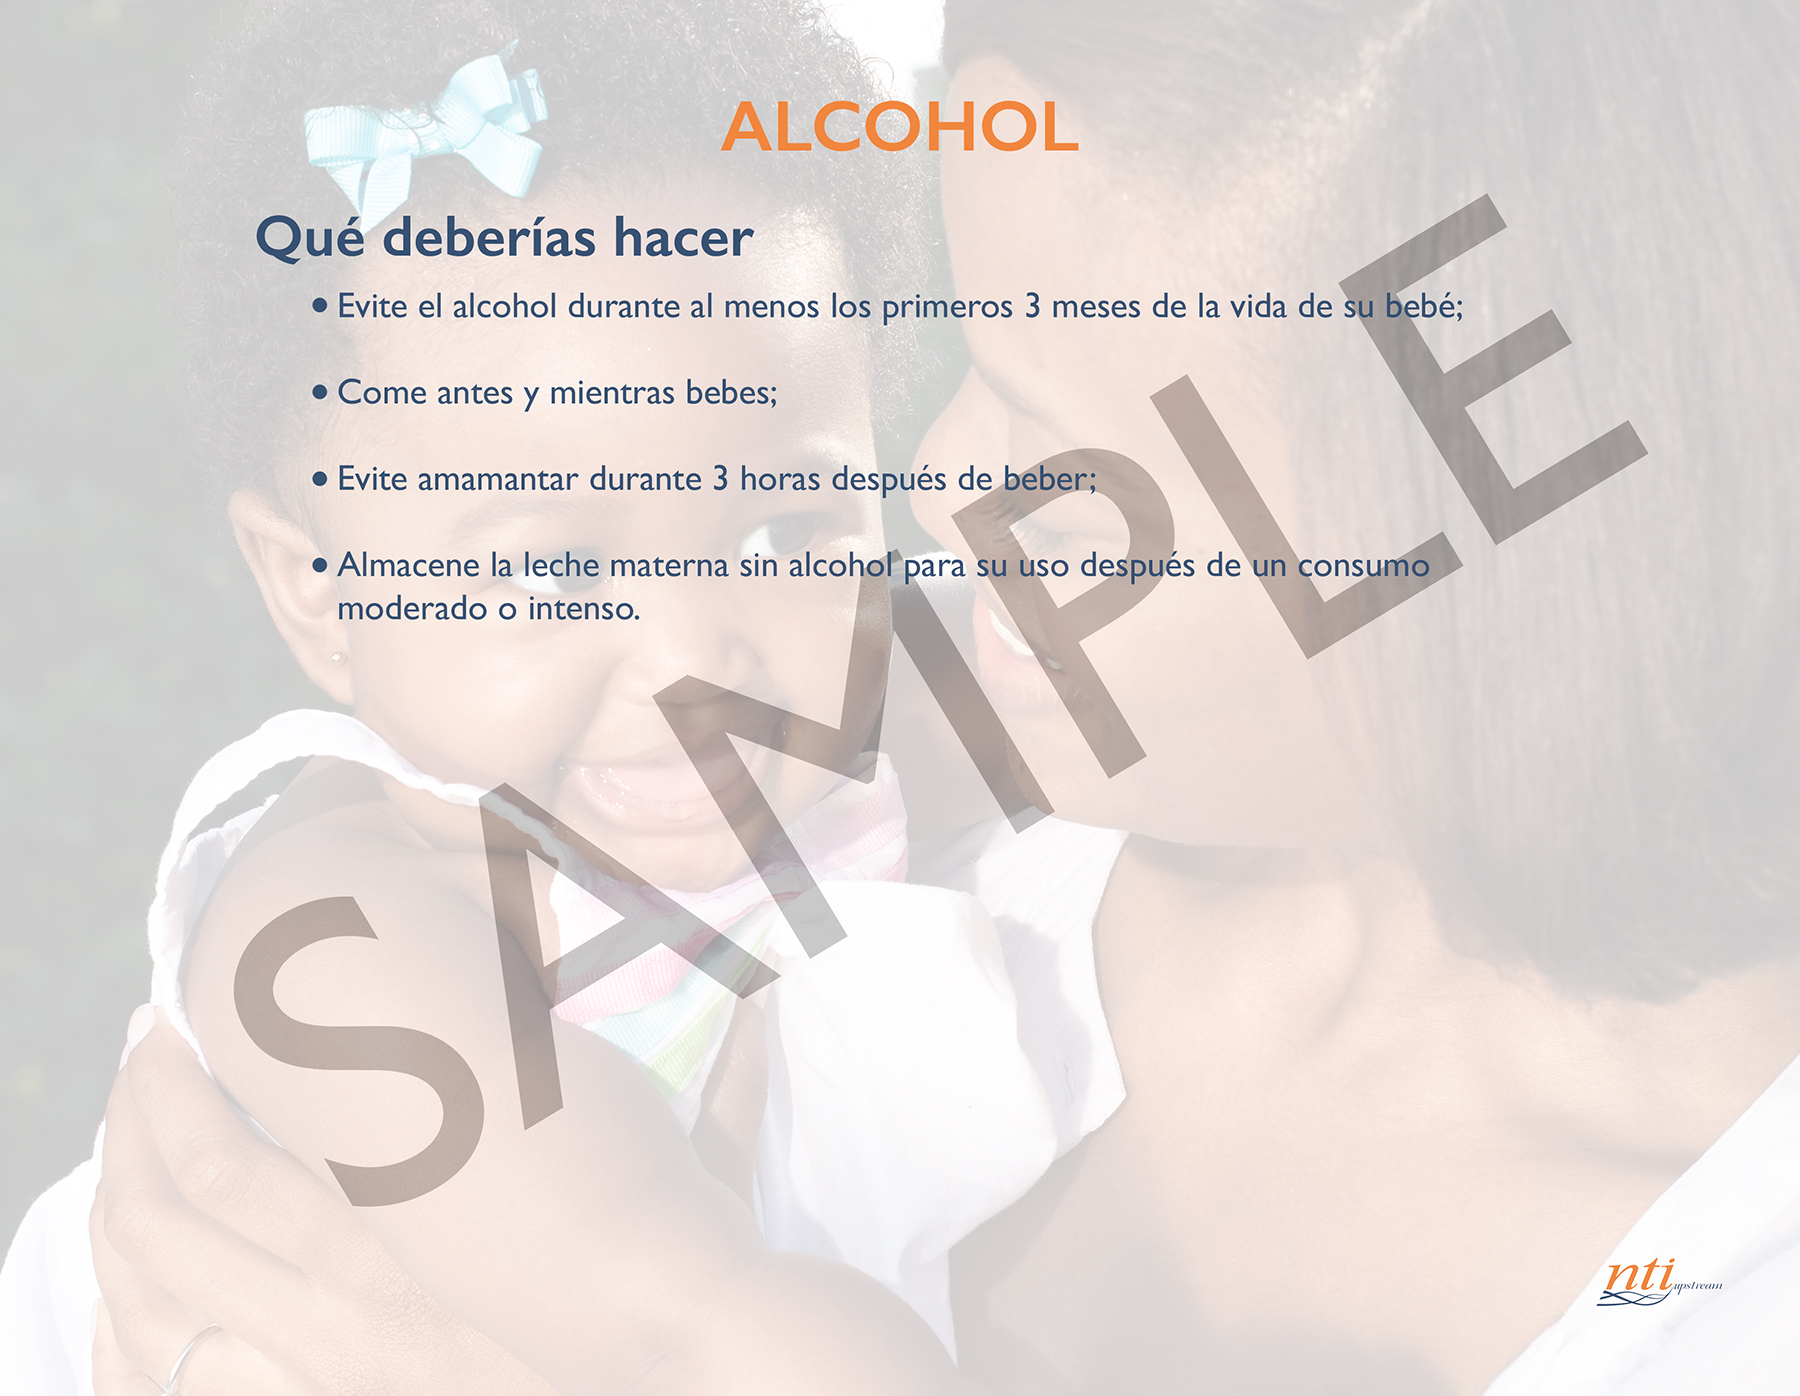 Alcohol_Spanish_bleeds_page2_SAMPLE.jpg